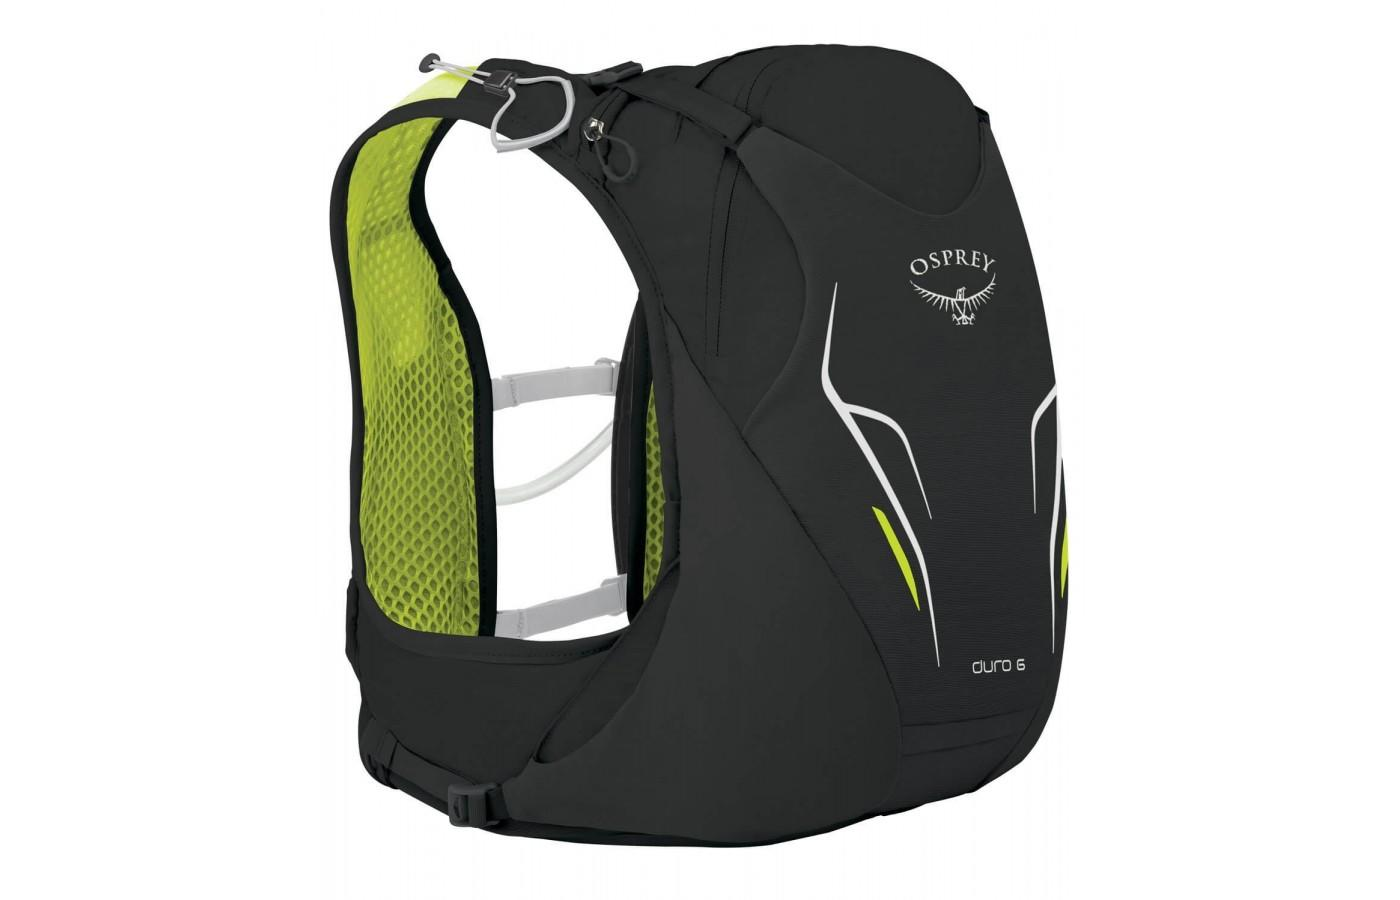 The Osprey Duro 6 is a durable hydration vest perfect for longer hikes or runs.